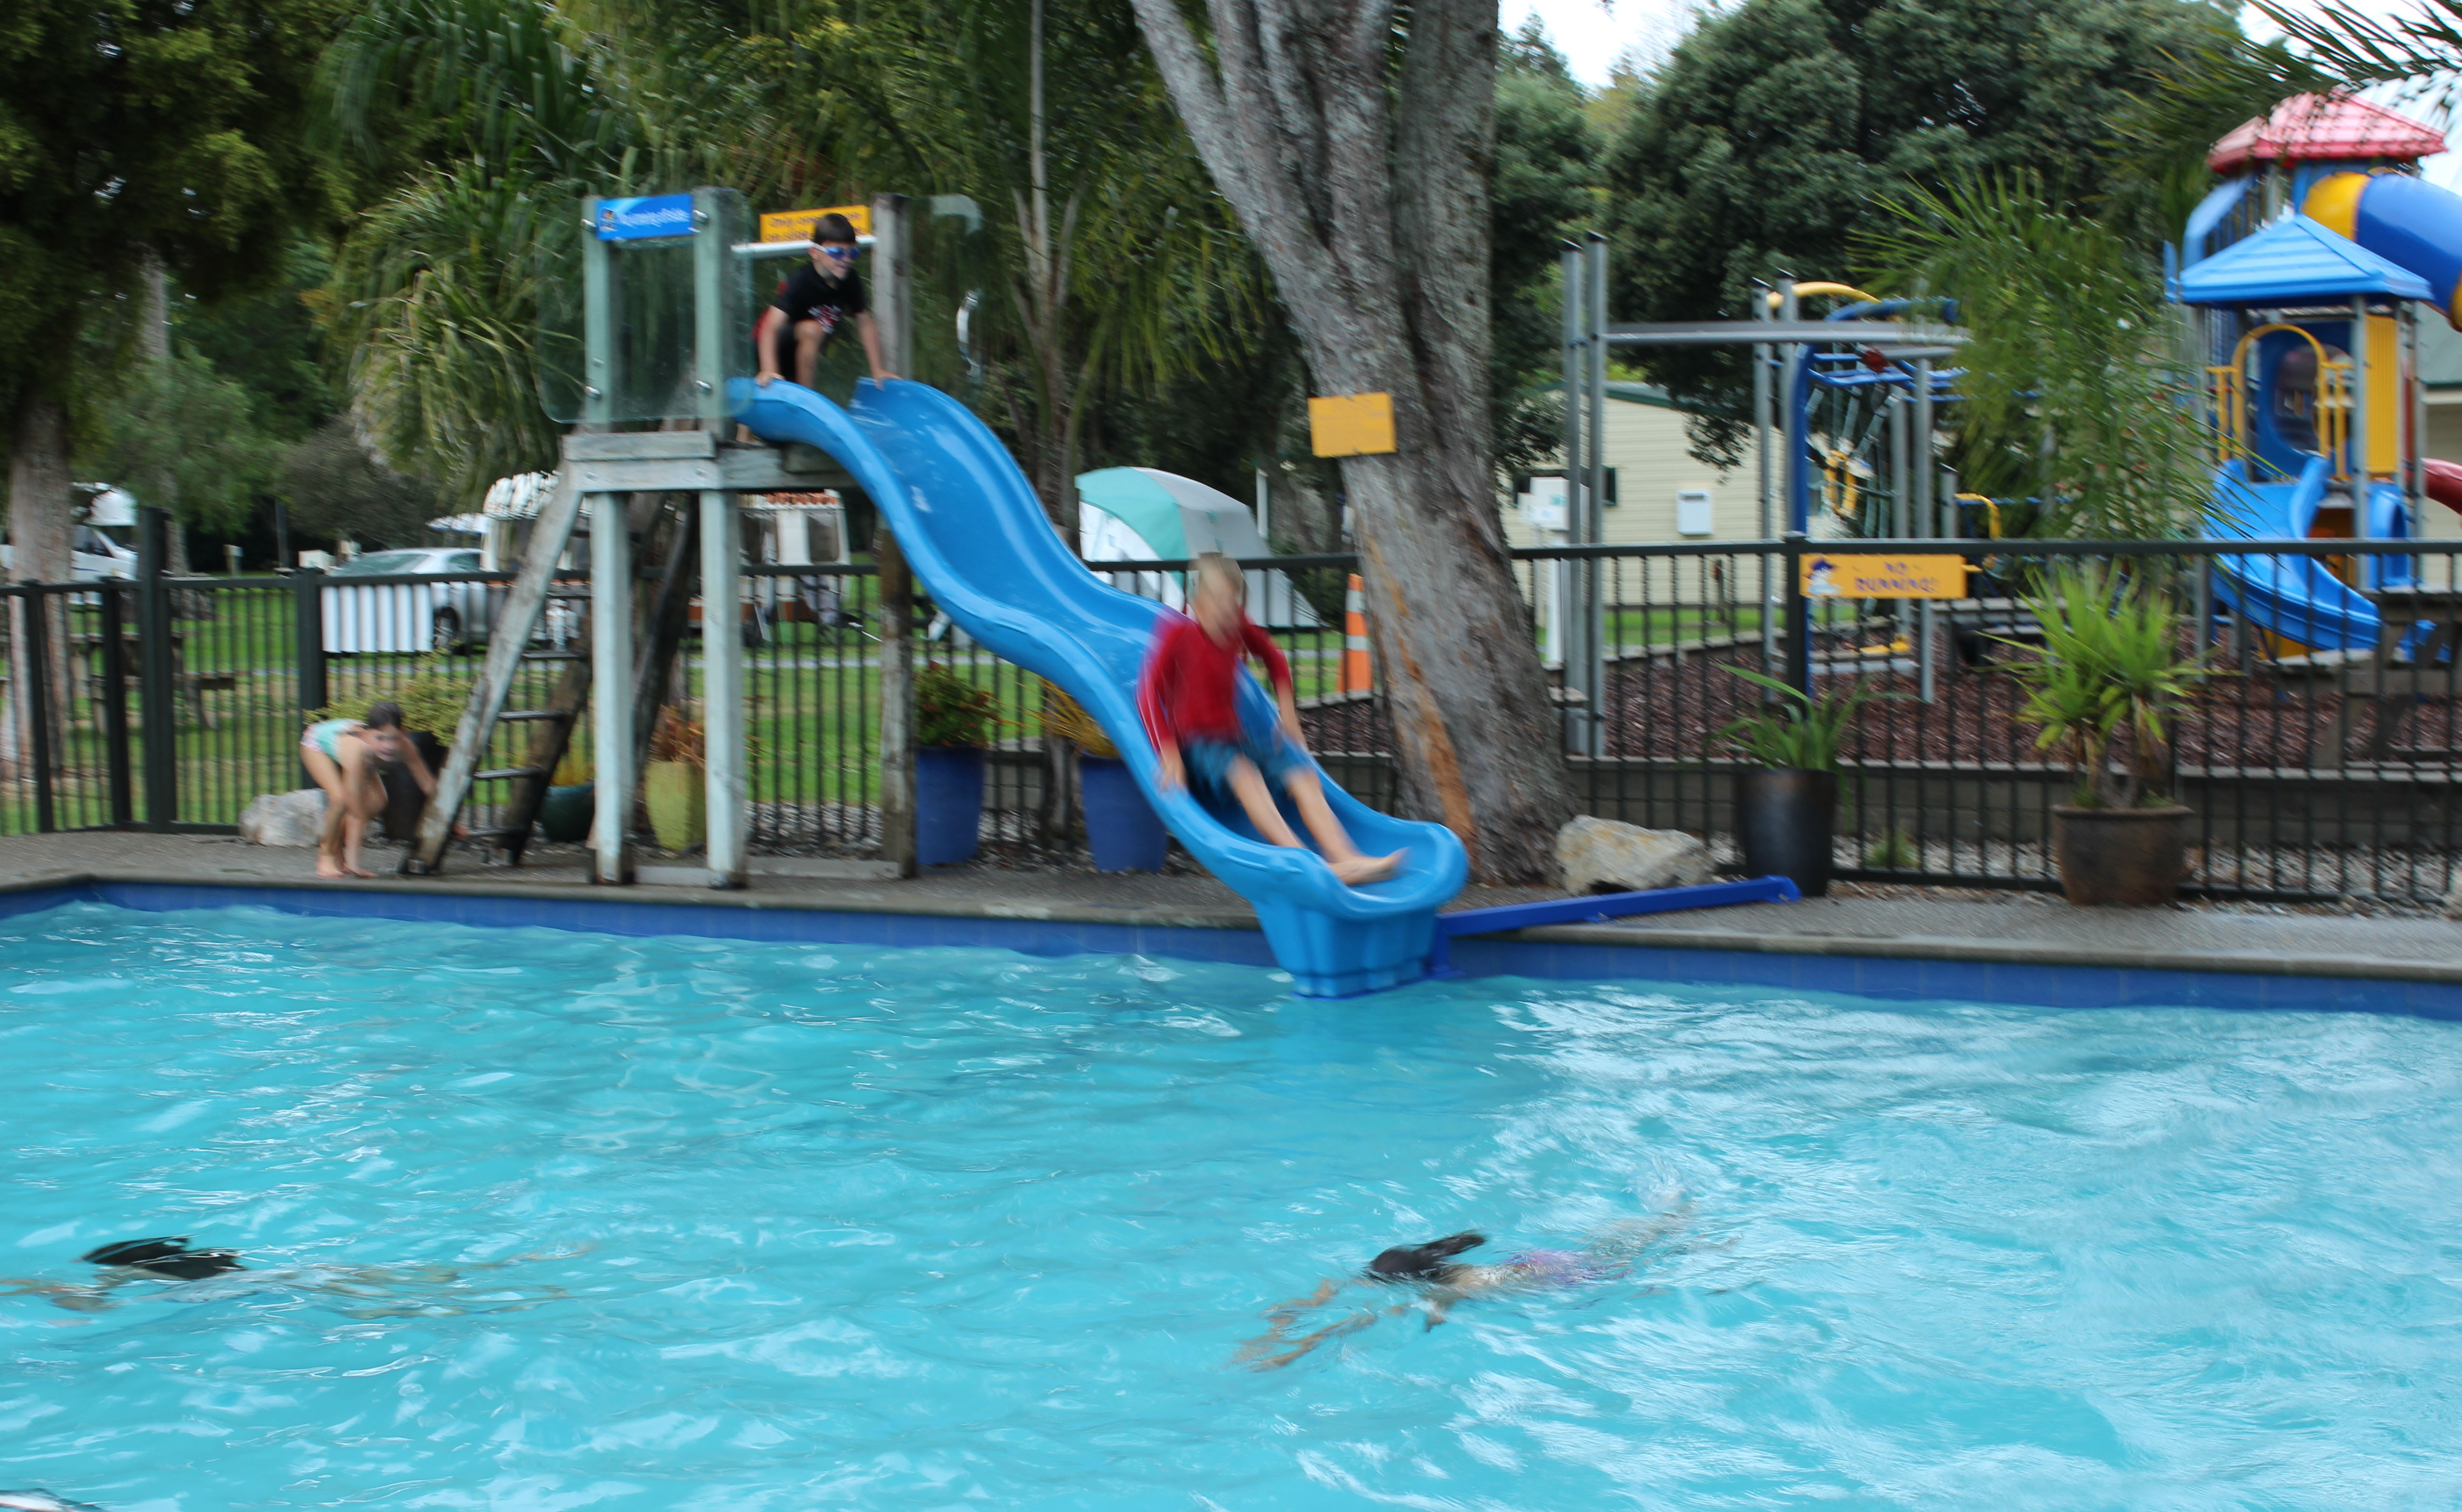 get inspired kids biking Nelson Kaiteriteri New Zealand Great Taste Bike Trail  Top 10 Motueka Holiday Park pool slide fun goRide